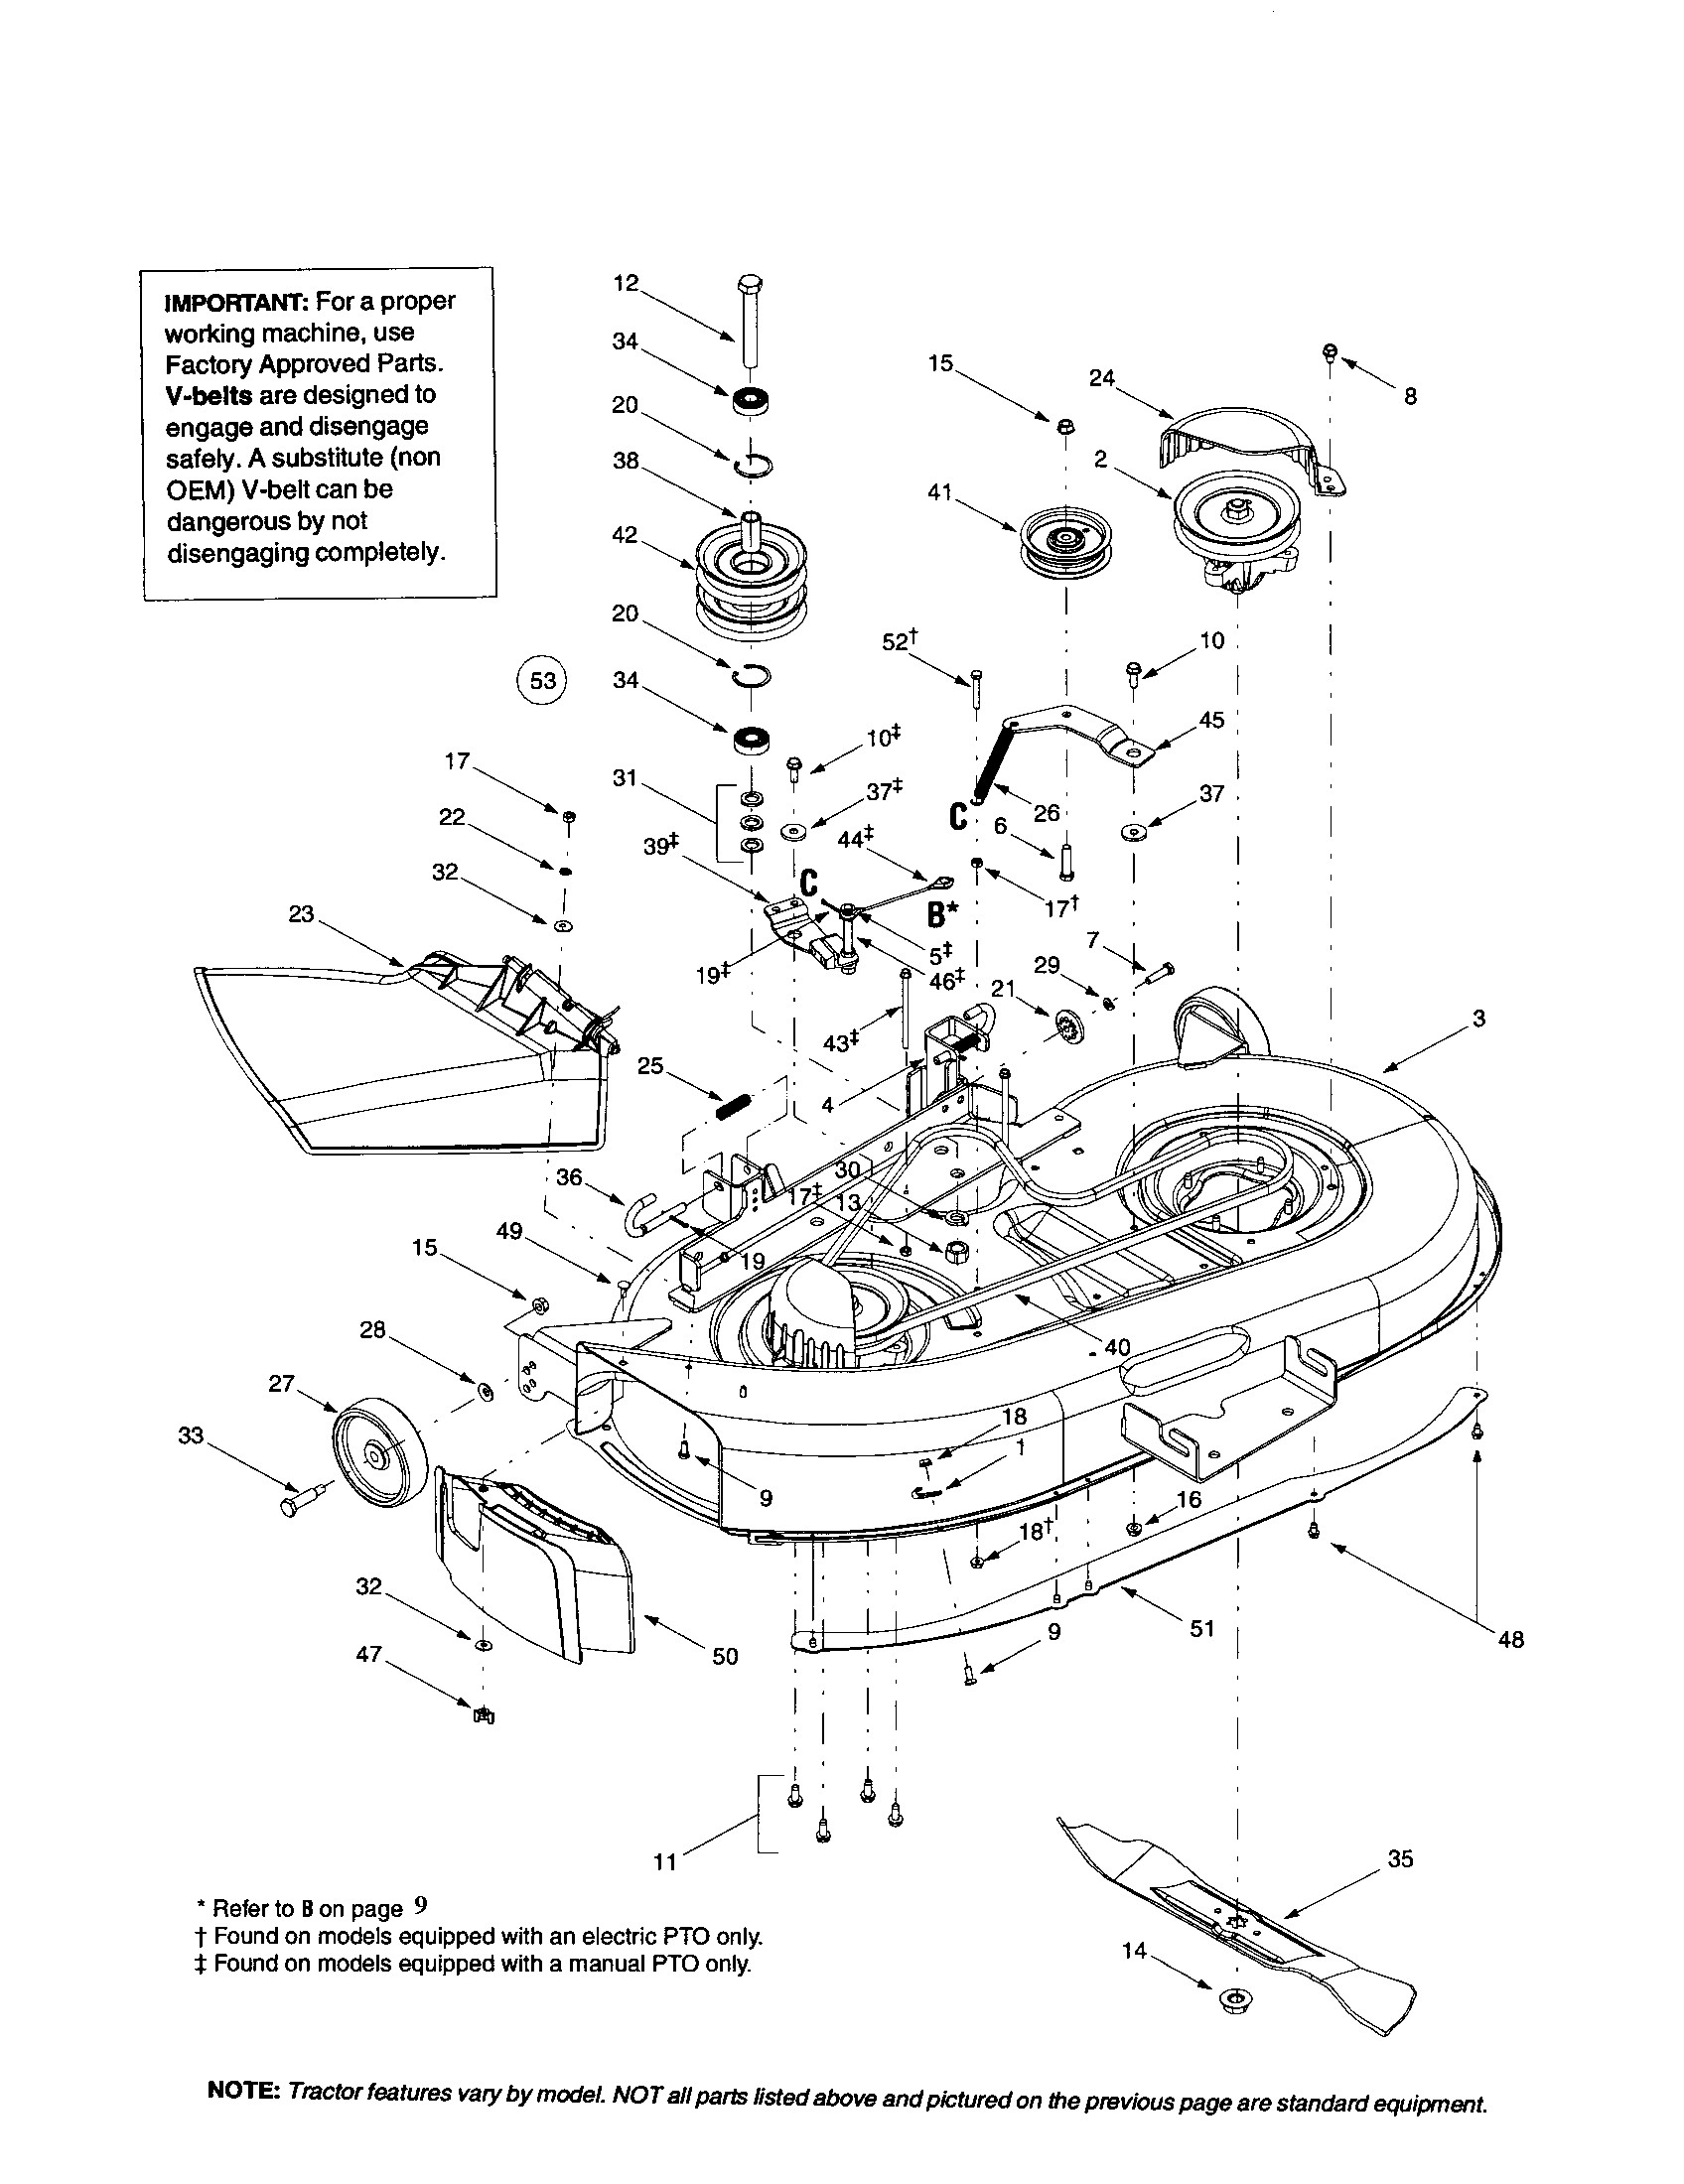 Dixon Wiring Diagram Library Onan B43g Lawn Mower Parts Diagrams To Her With Mtd Riding